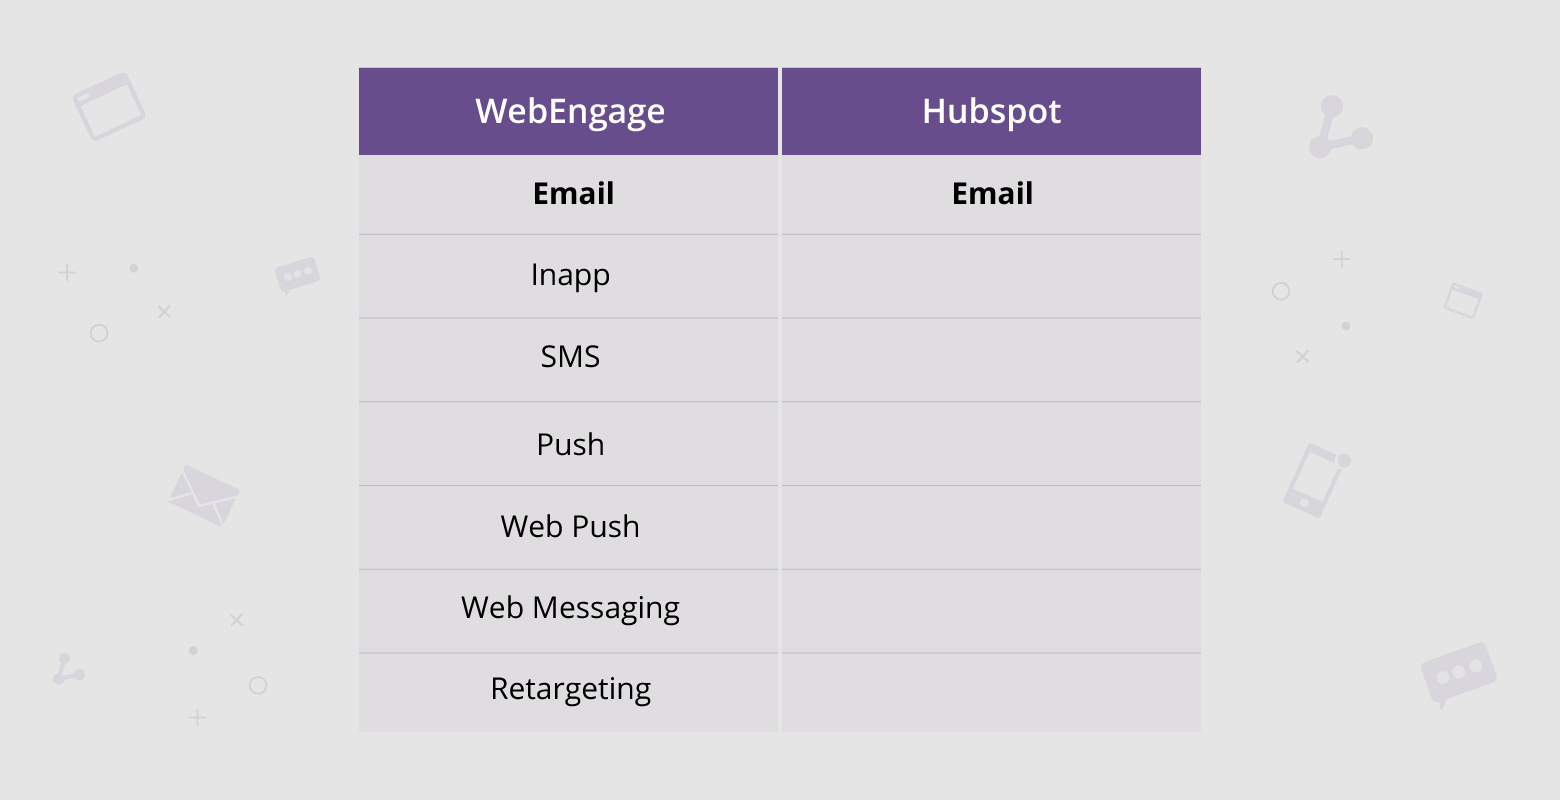 Difference in engagement channels of B2B and B2C marketing automation (Comparison of Hubspot and WebEngage)